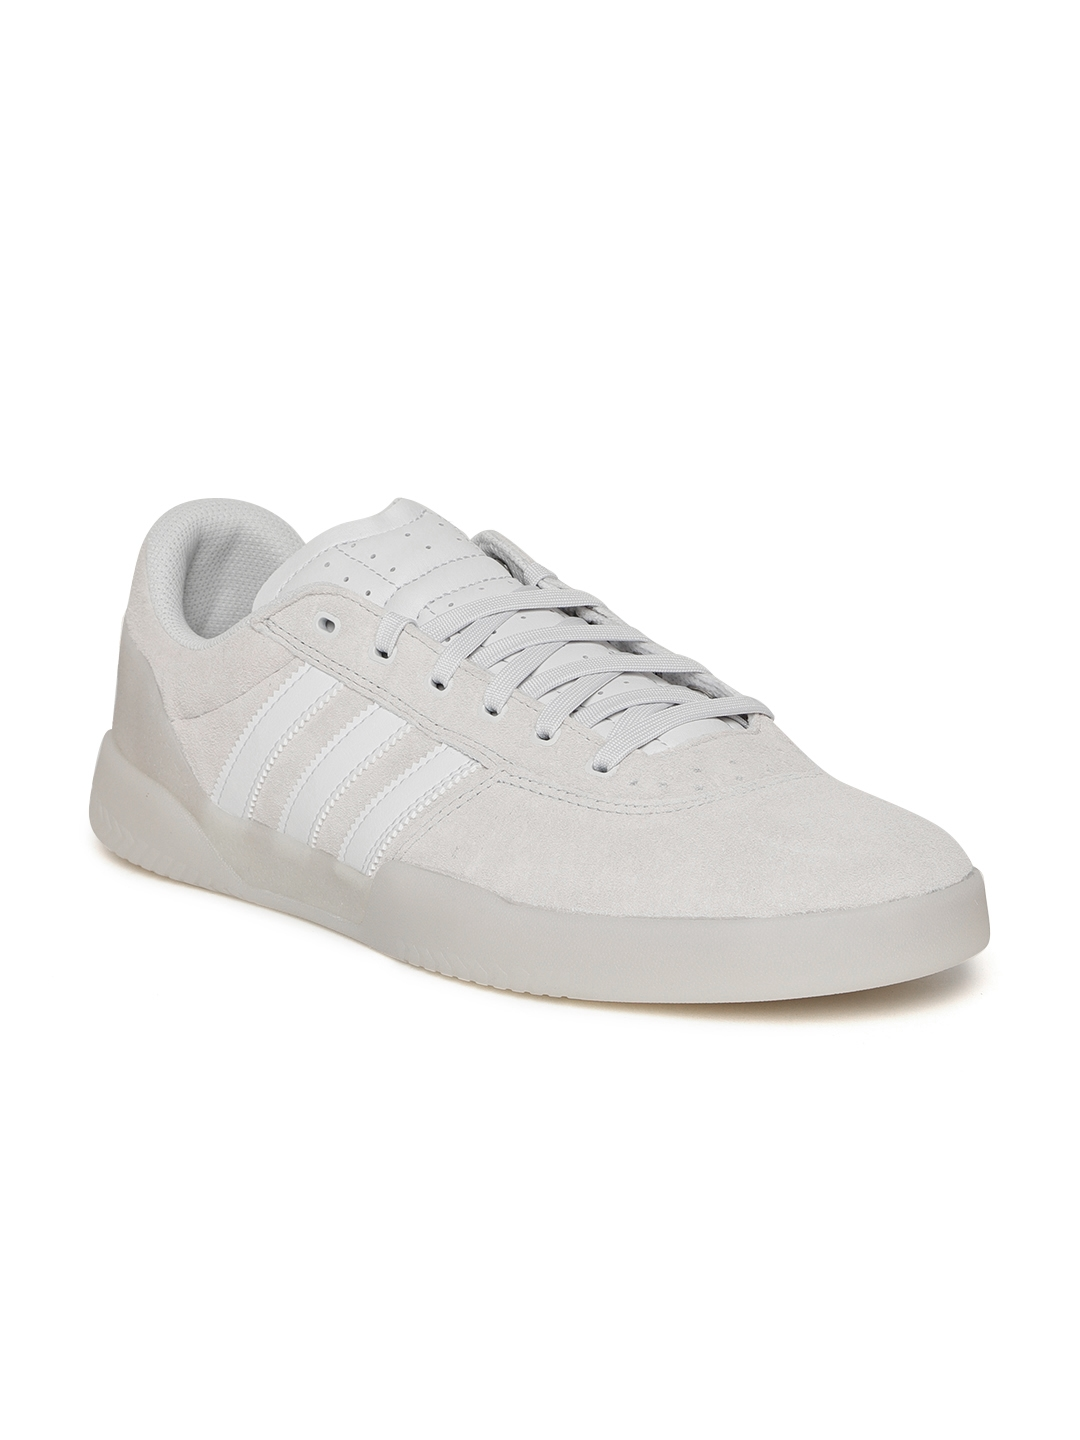 Buy ADIDAS Originals Men Grey City Cup Skate Shoes - Casual Shoes ... 70c8933e8